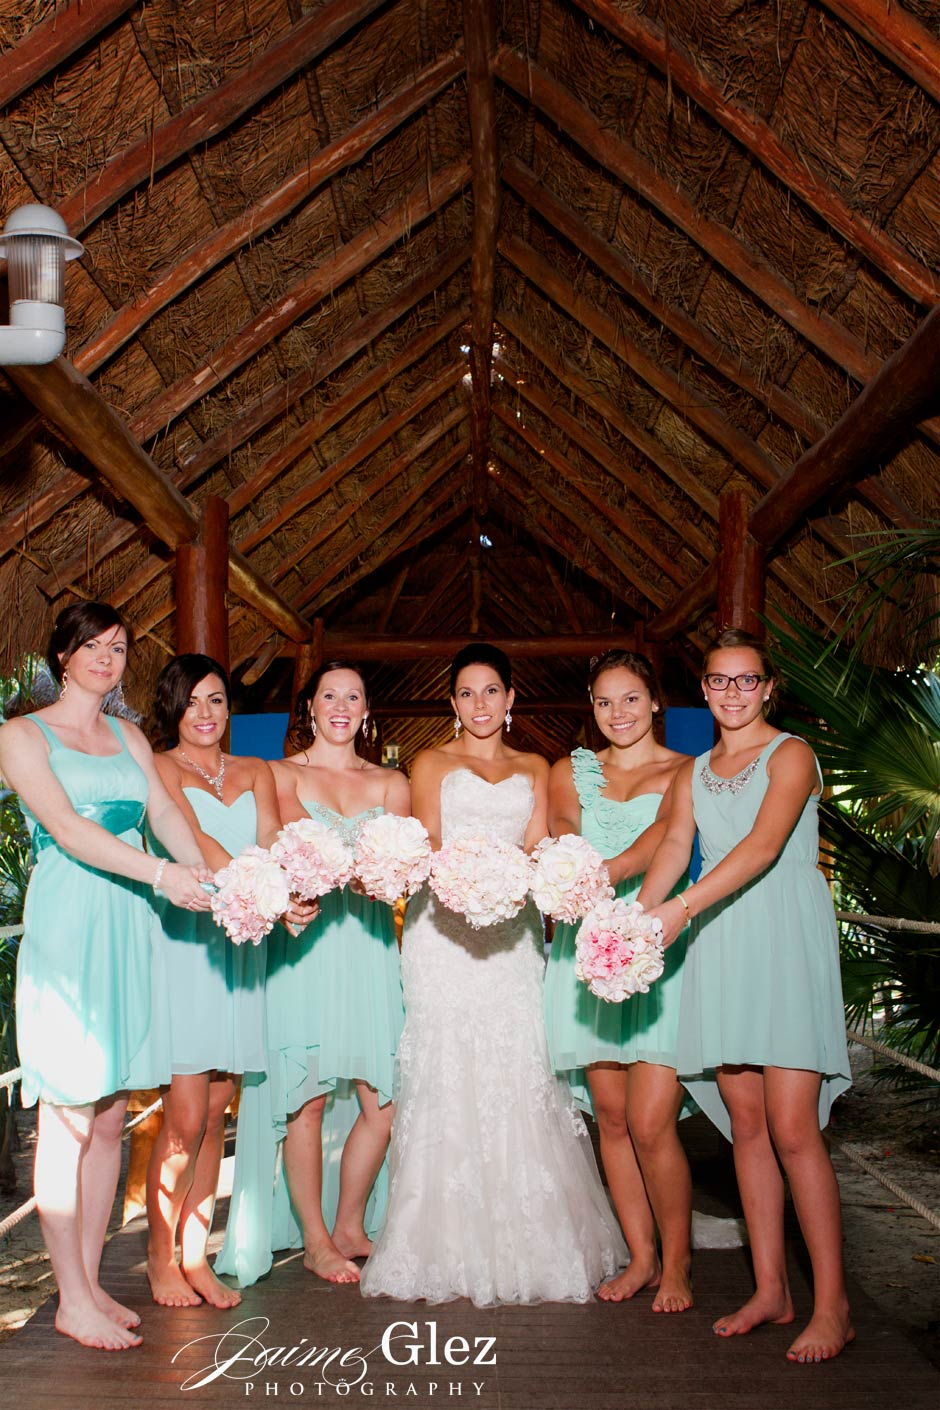 Bridesmaid look gorgeous wearing that turquoise dresses!